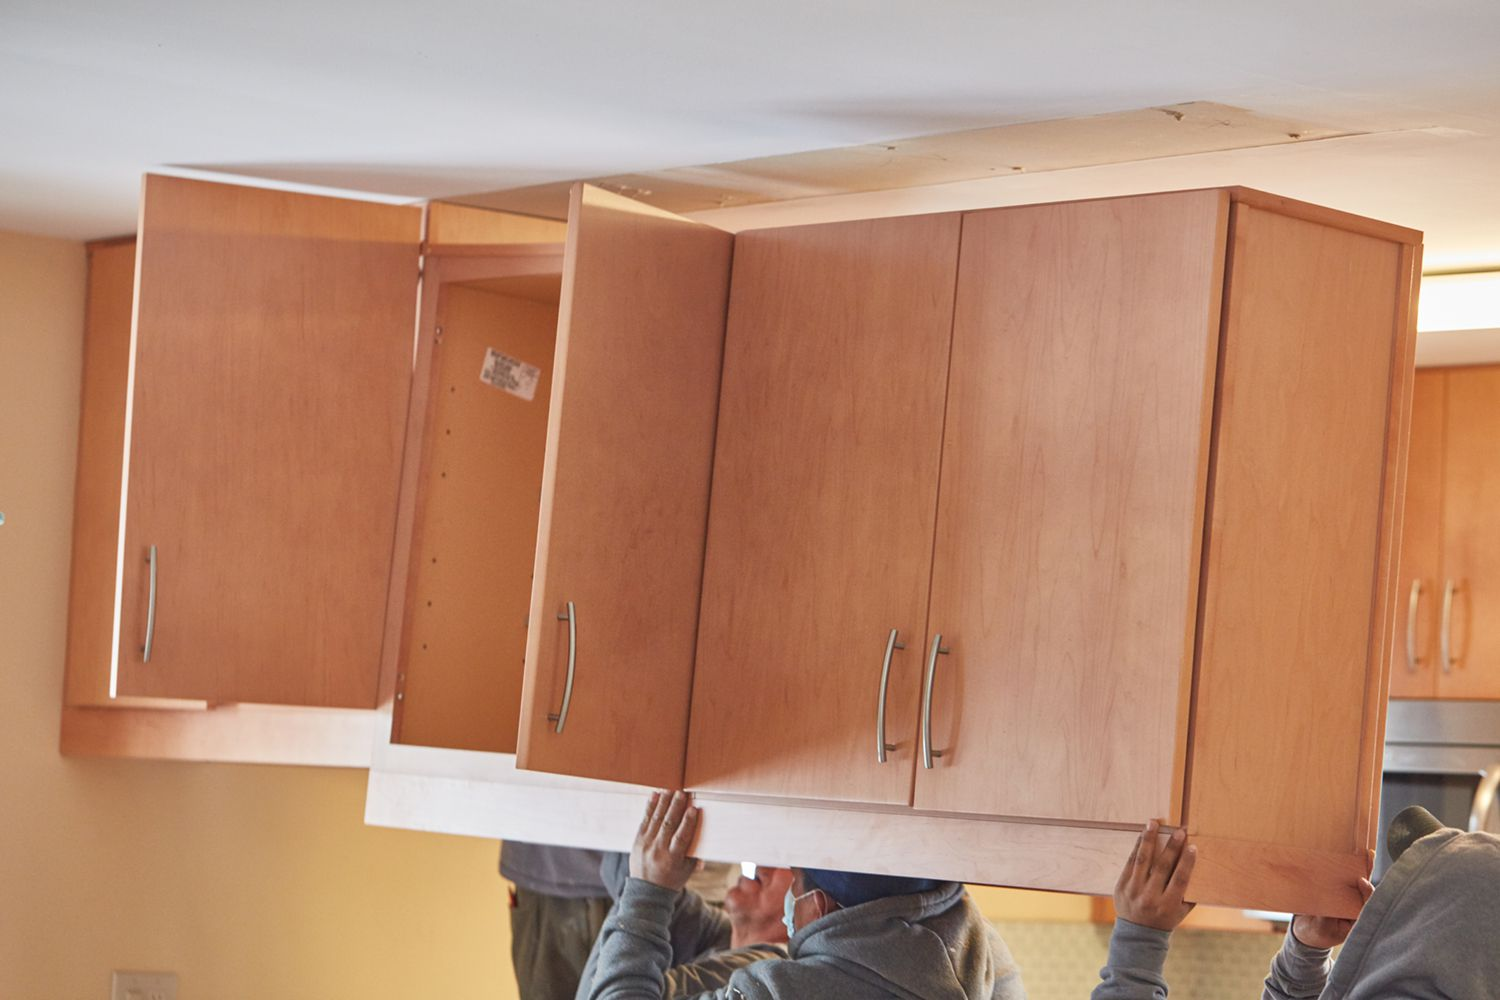 Wooden cabinets being removed for kitchen remodel